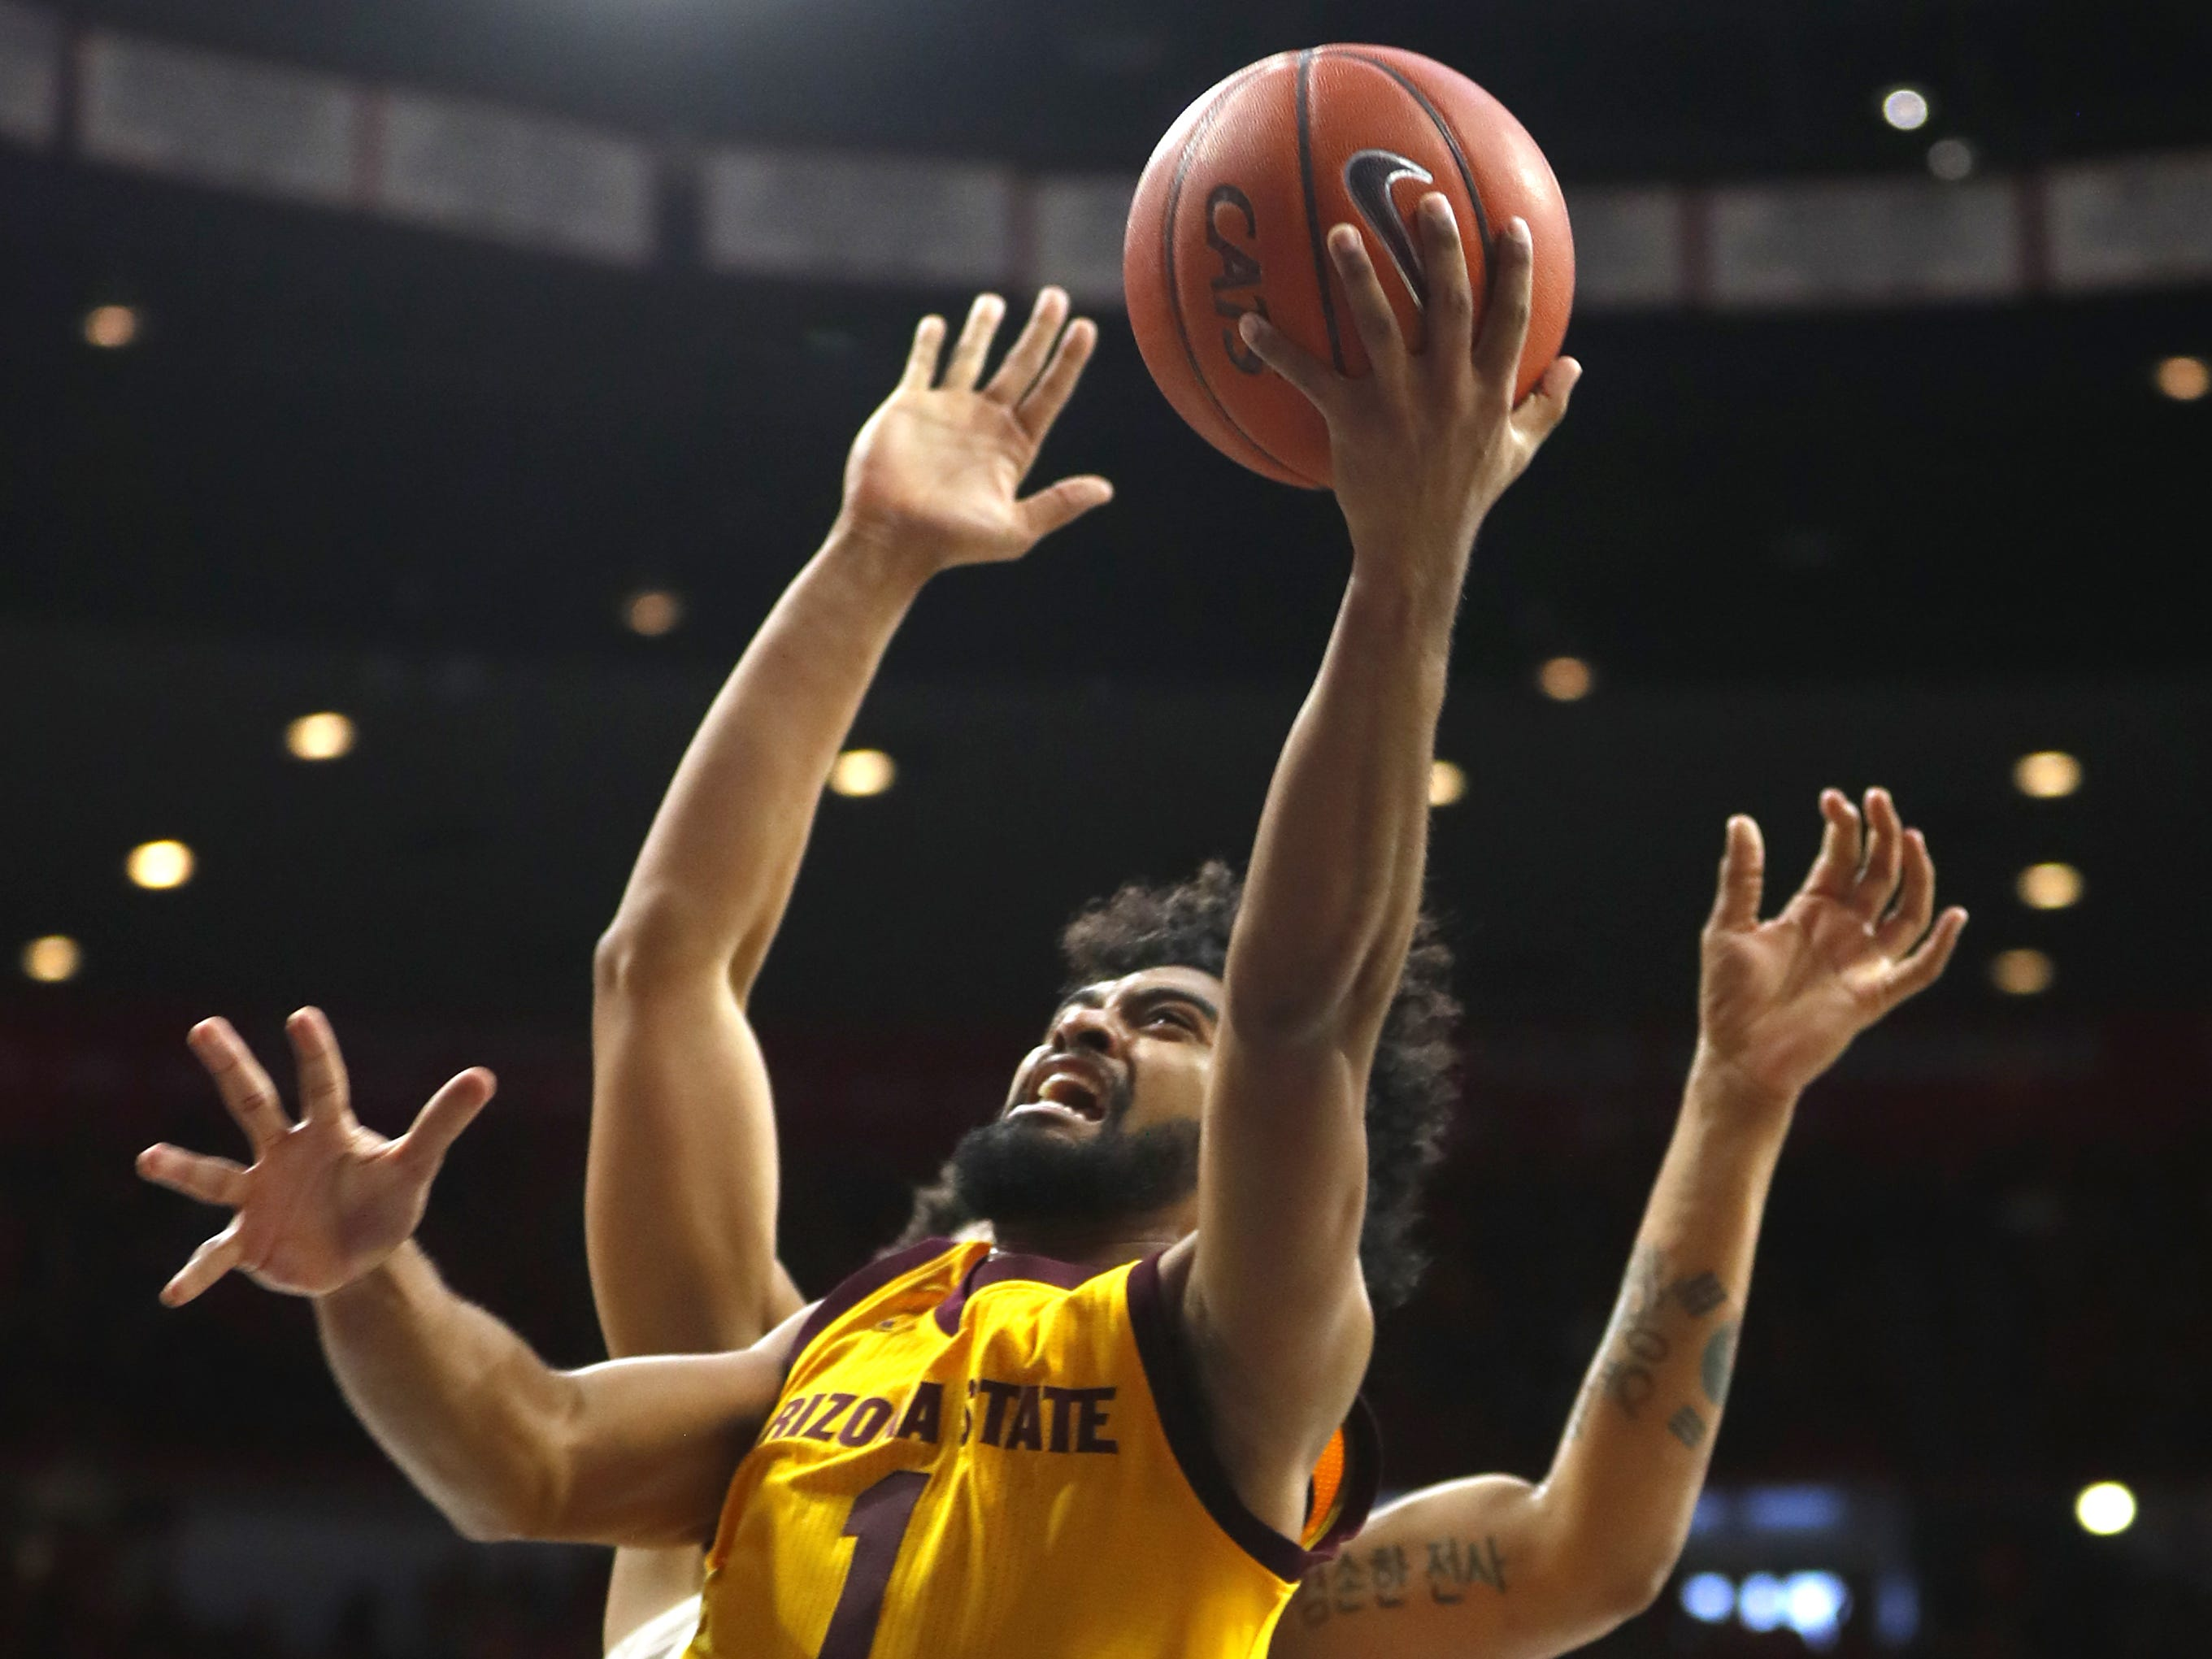 ASU's Remy Martin (1) makes a layup against Arizona during the second half at the McKale Memorial Center in Tucson, Ariz. on March 9, 2019.